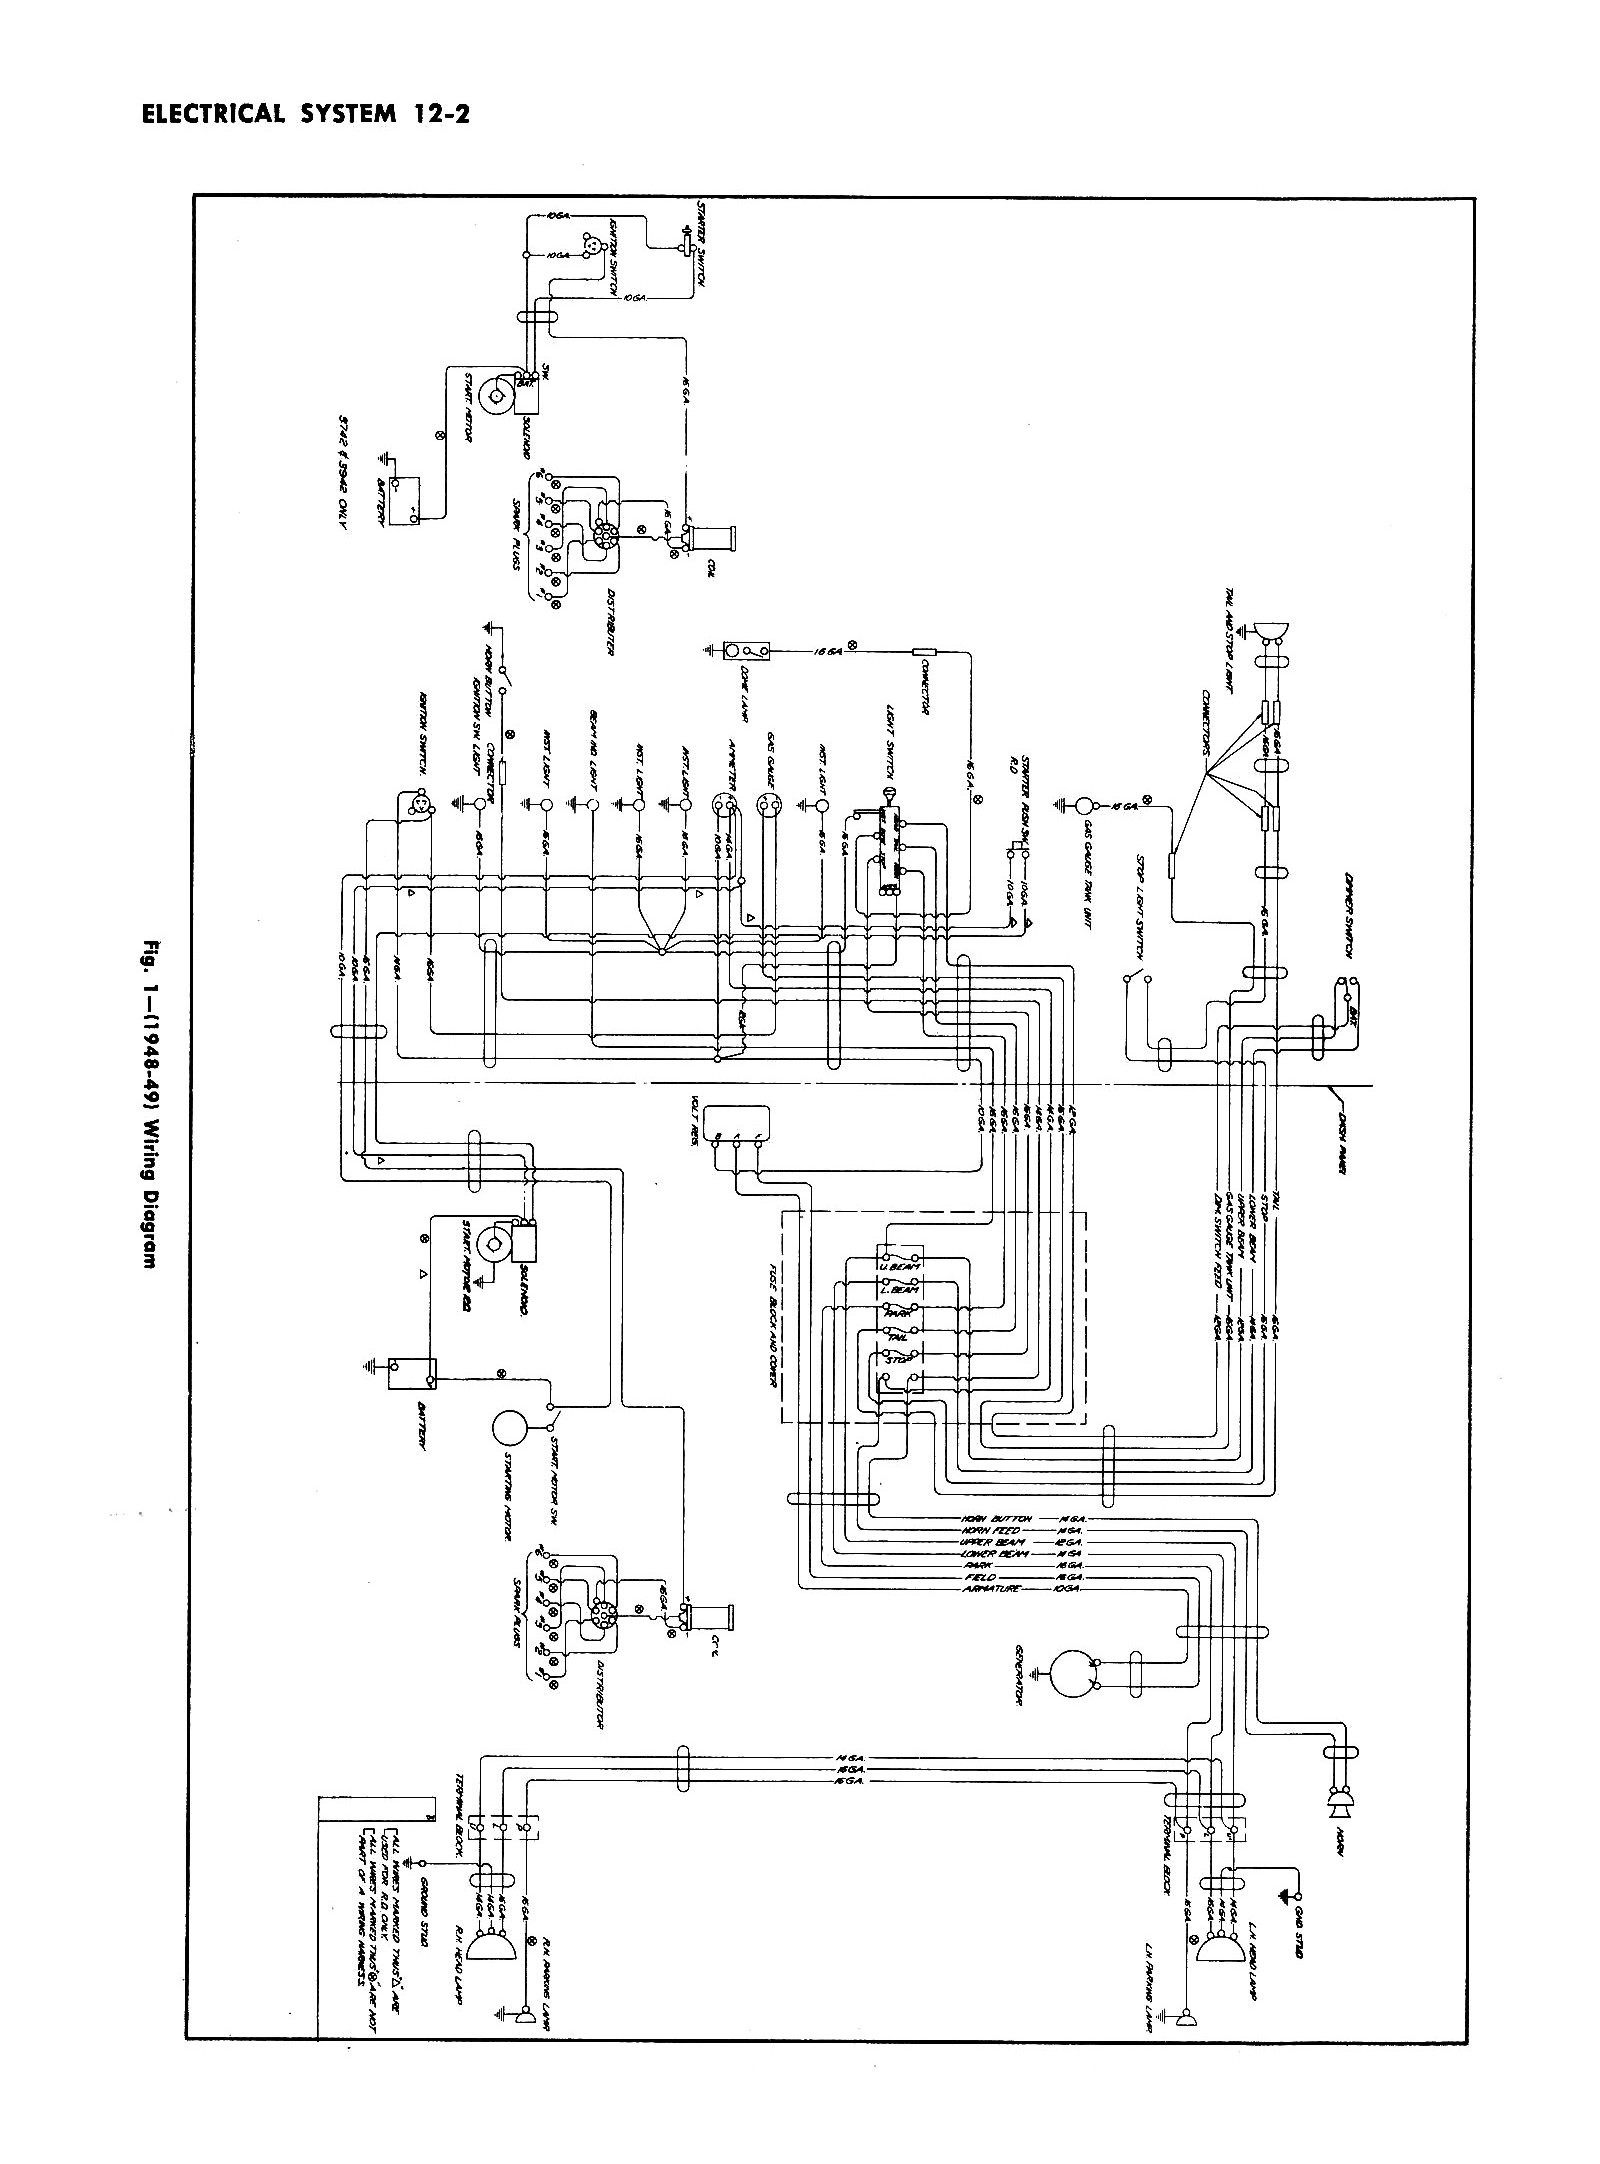 48car gmc ke switch wiring diagram wiring diagram simonand gm truck wiring harness at reclaimingppi.co